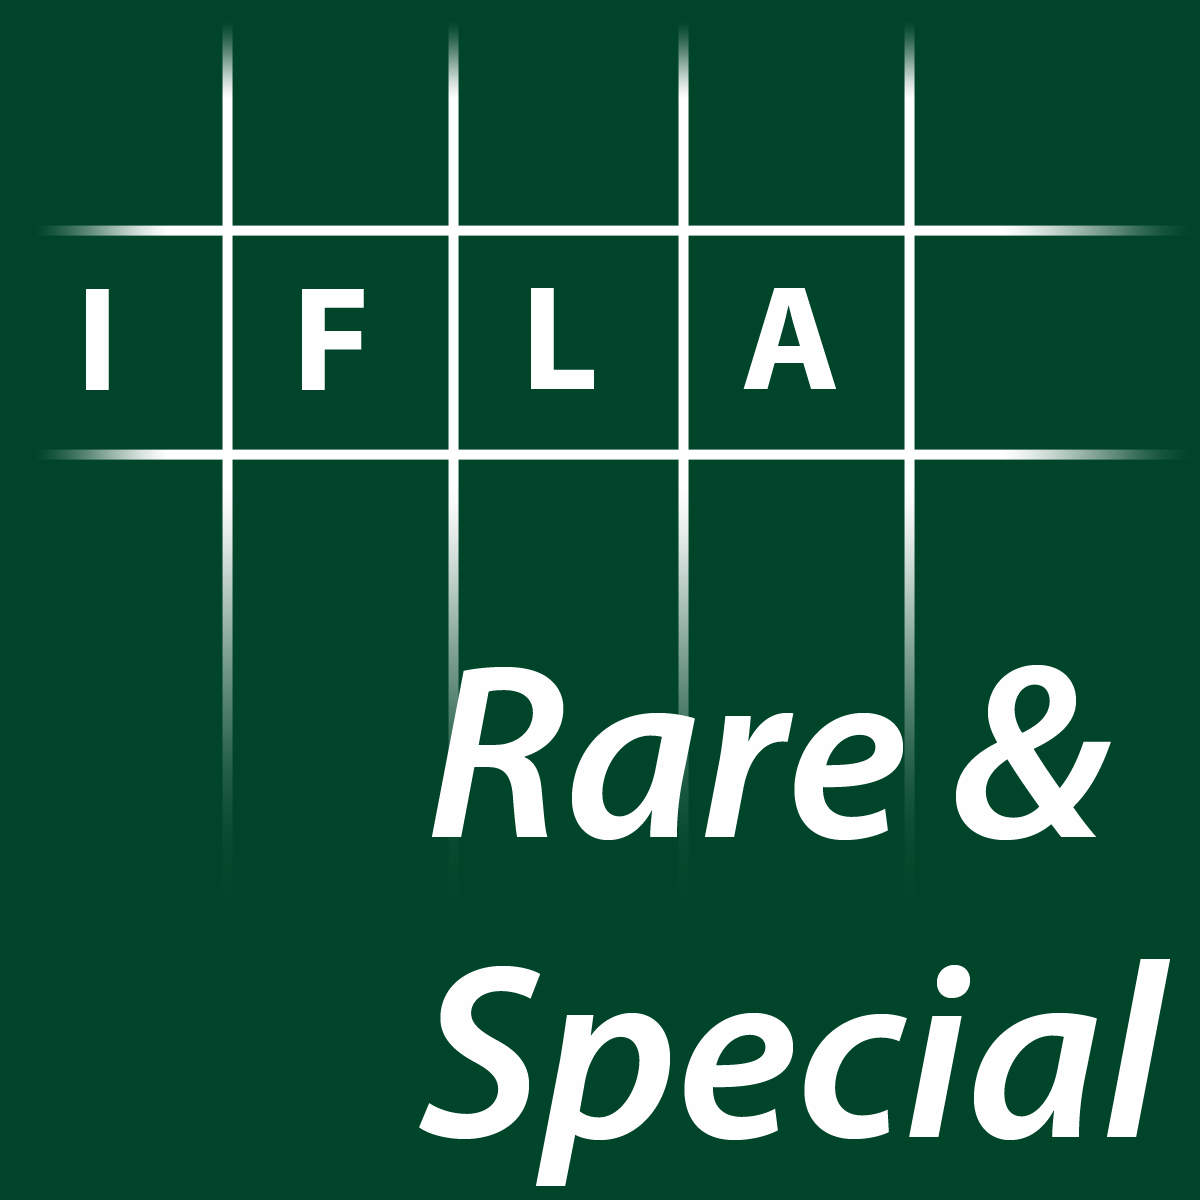 Rare & Special: News from the Rare Books and Special Collections Section of IFLA